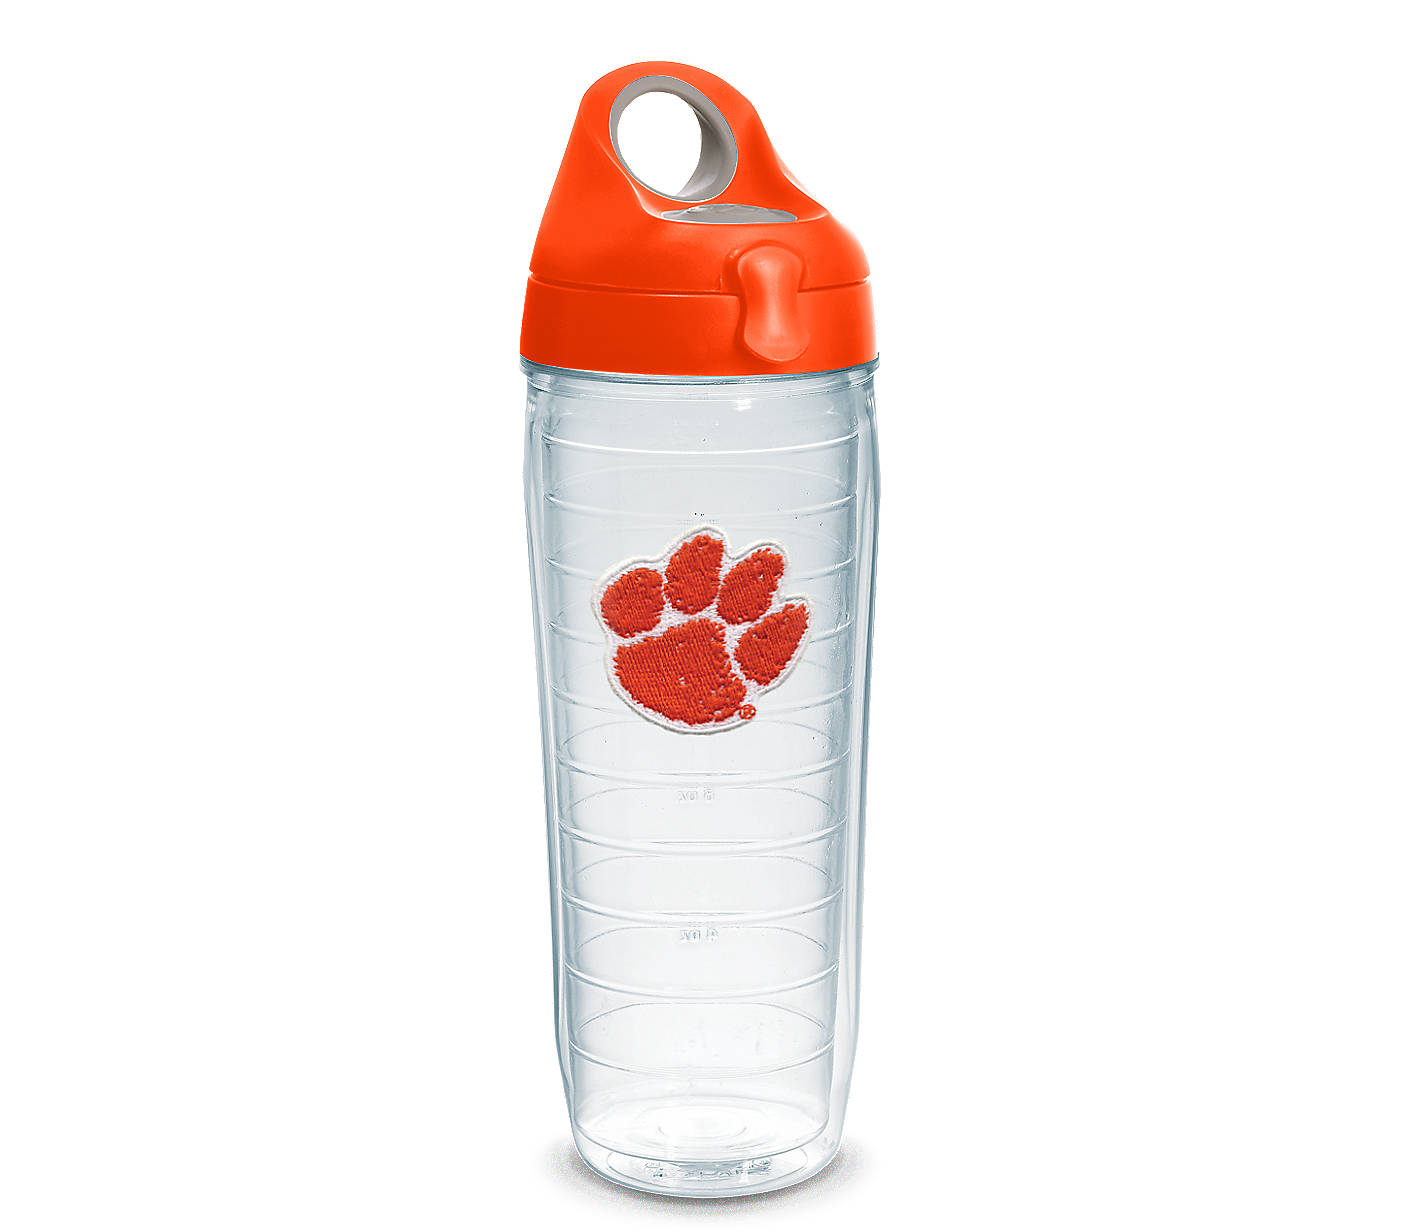 Clem-waterbottle-new